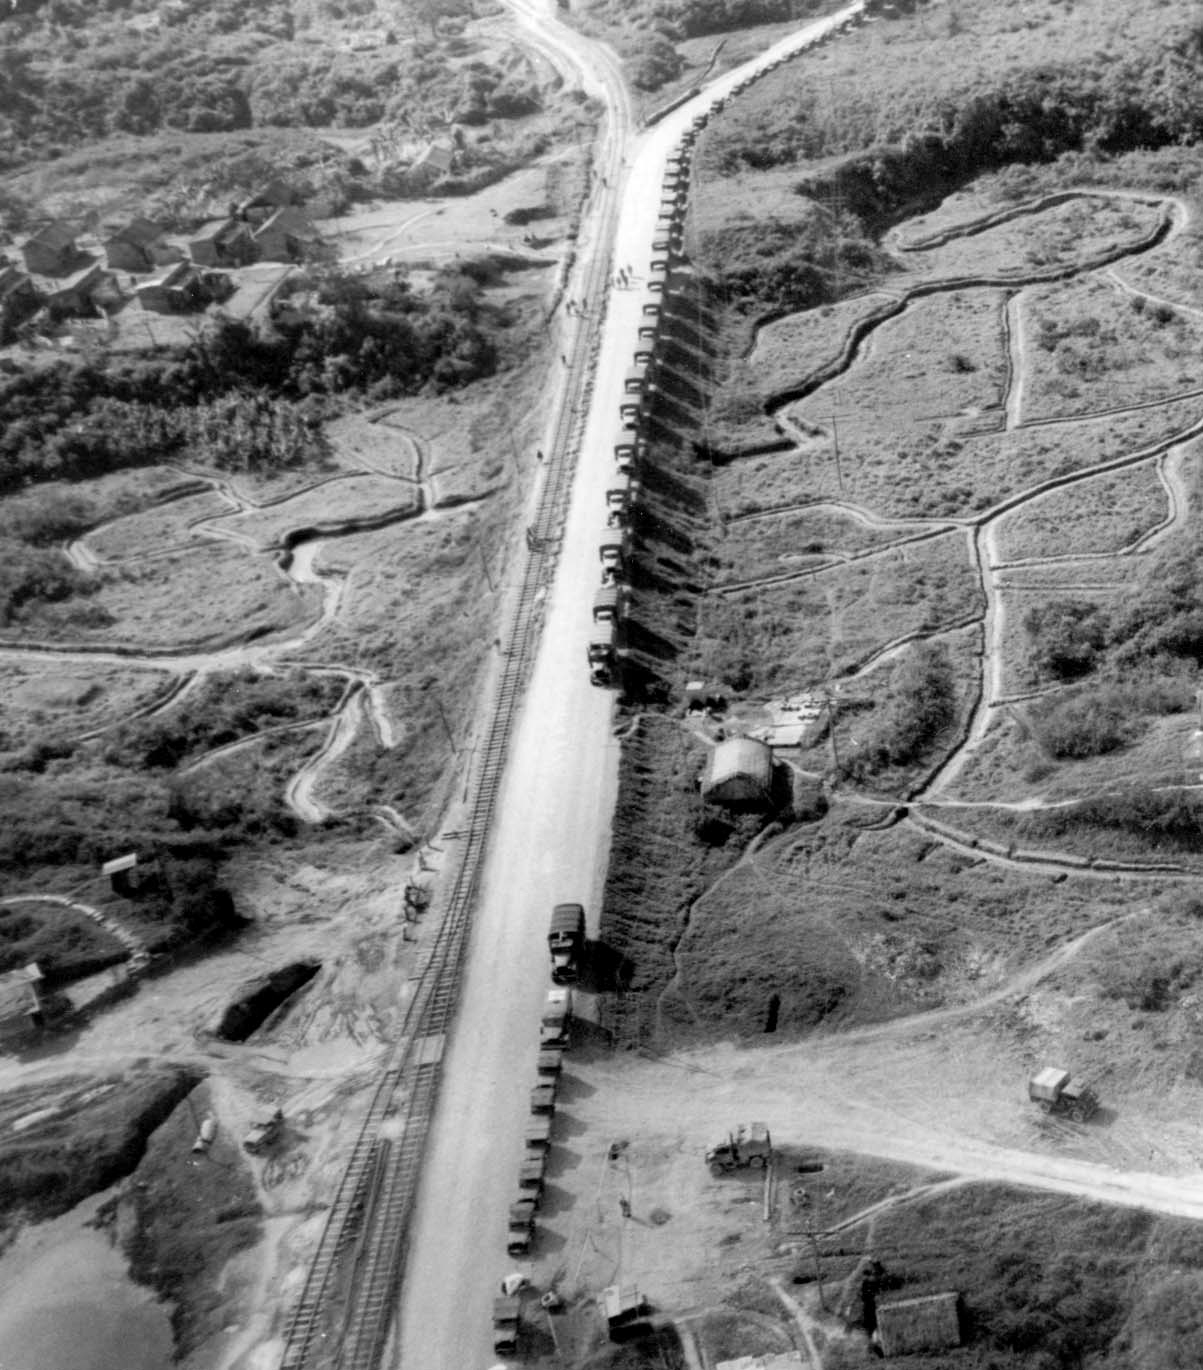 The first China truck convoy zigzags down the Stillwell ROad in to the Mi-tu Val